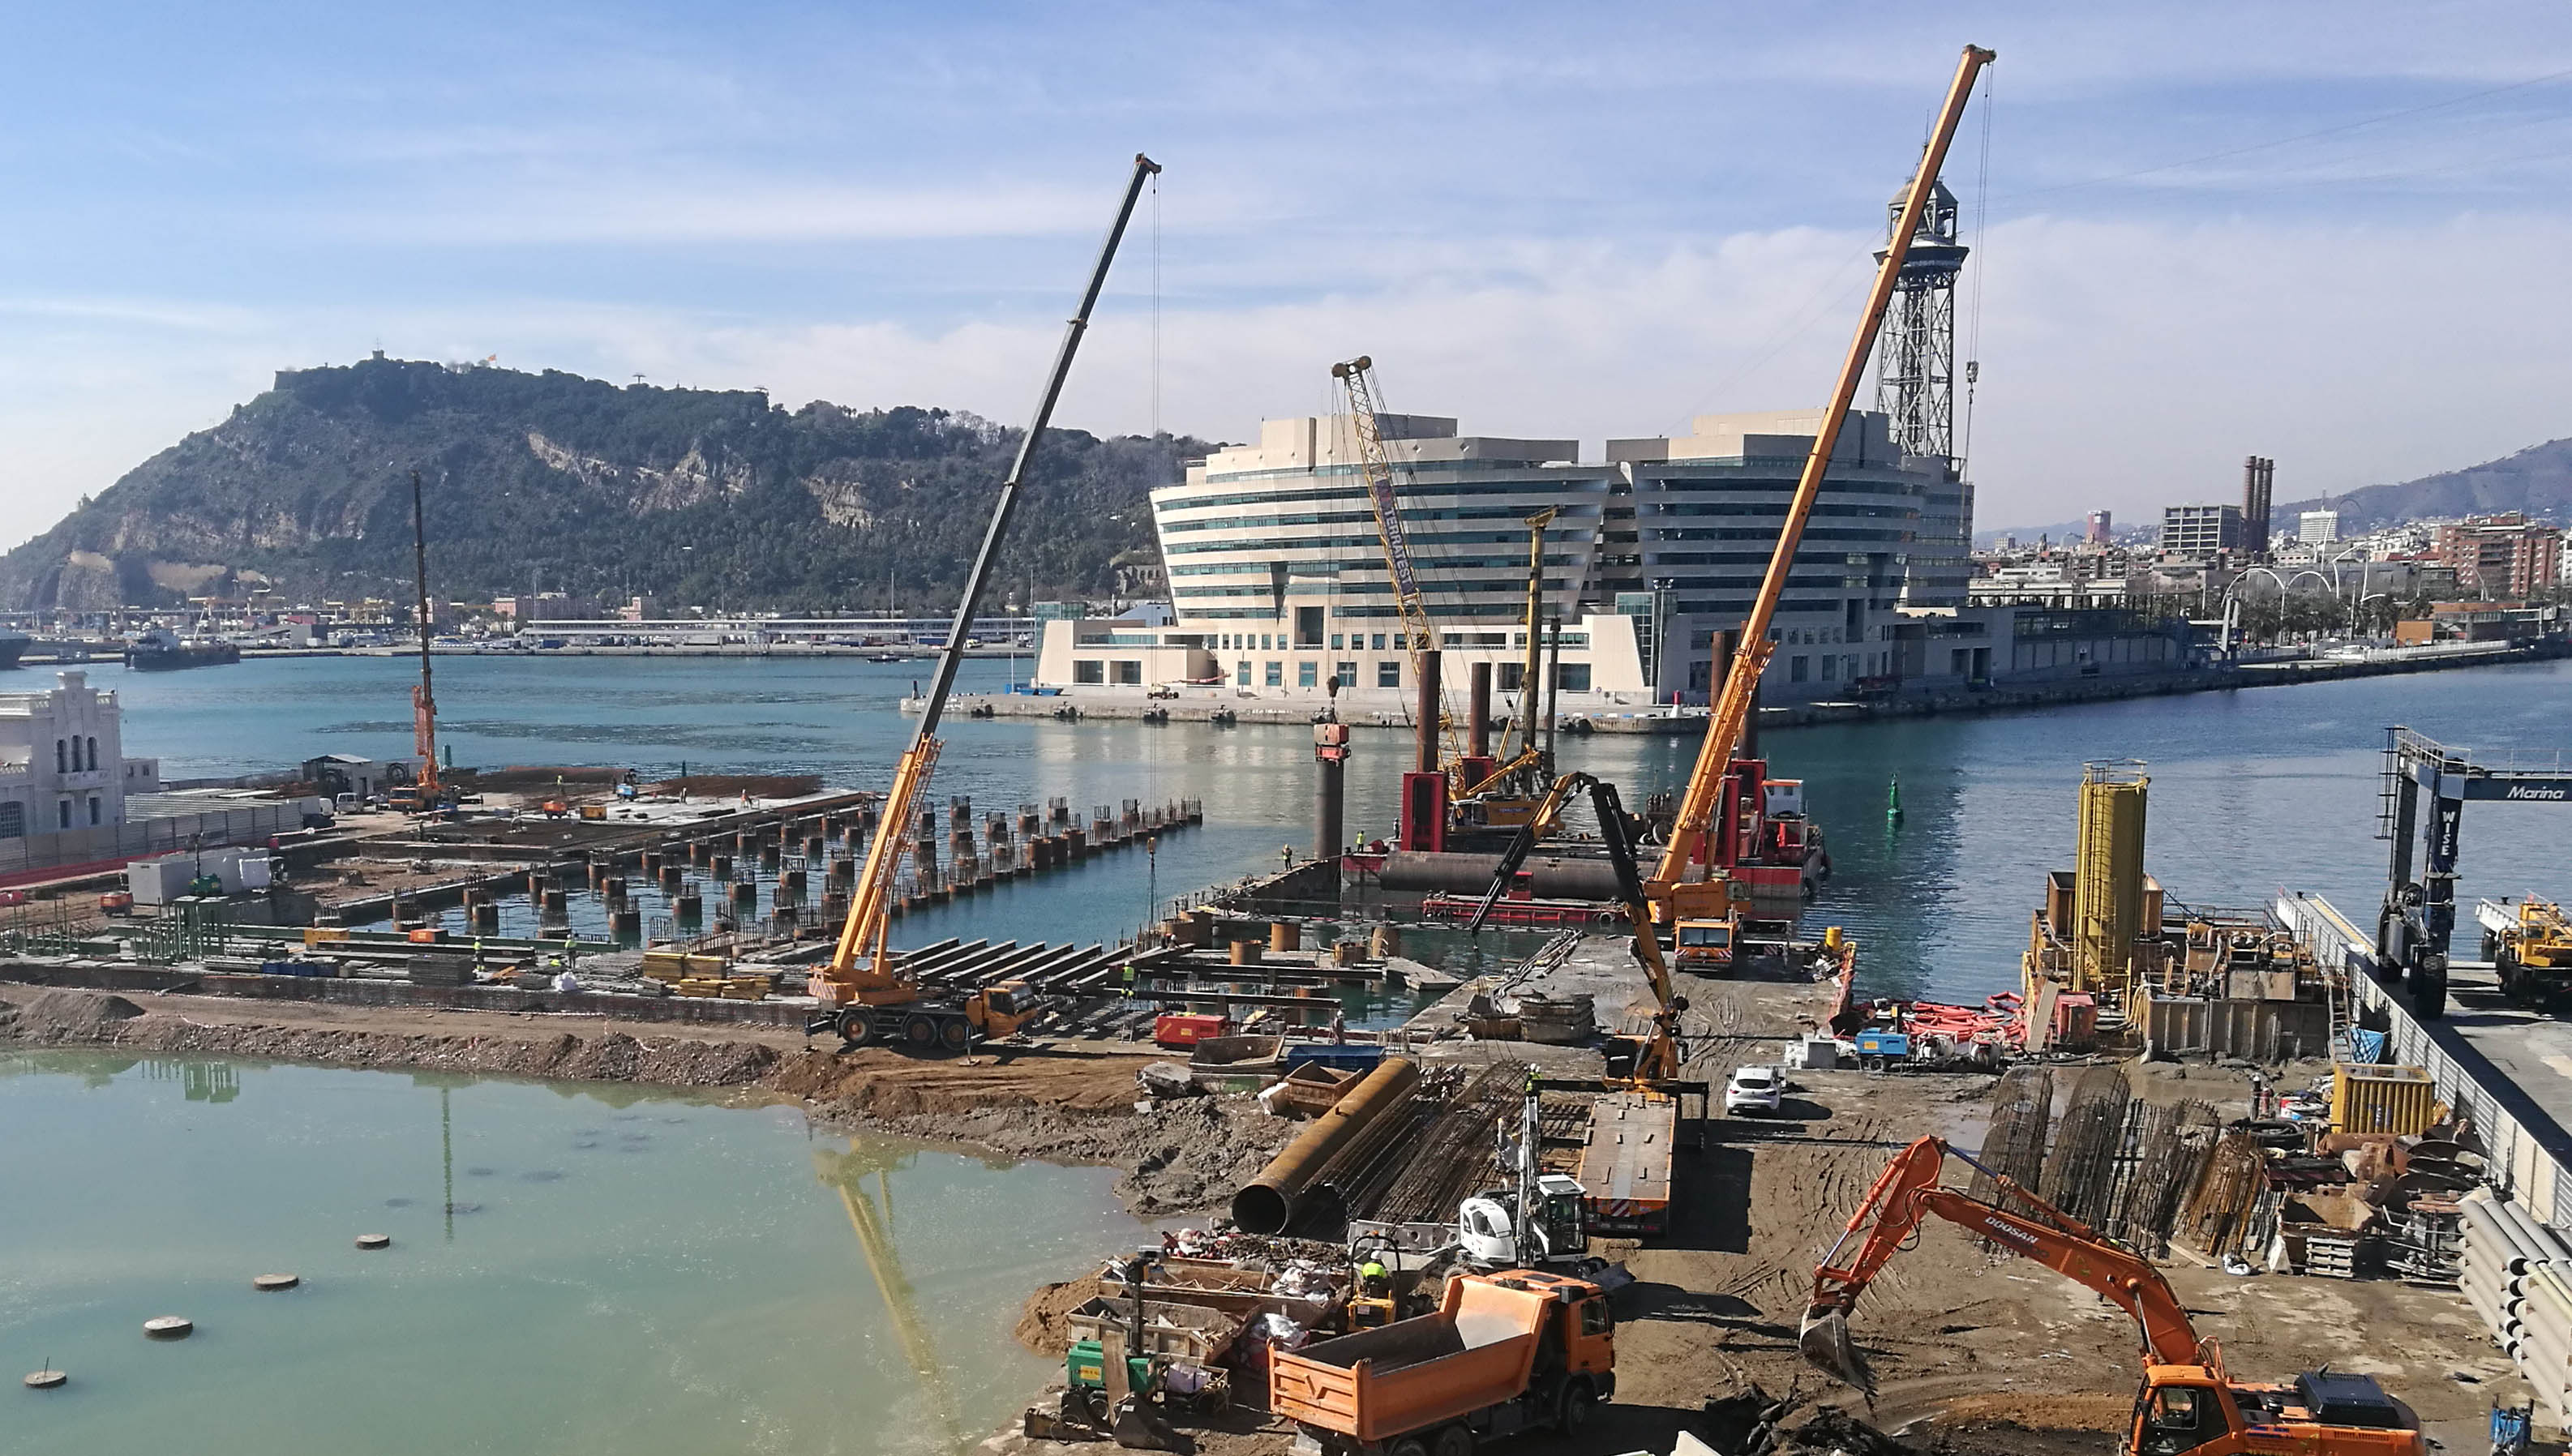 grua, pot de barcelona, shiplift, marina 92, trade center, enginyeria maritima, ingenieria marítima, gruas, pilotes marinos